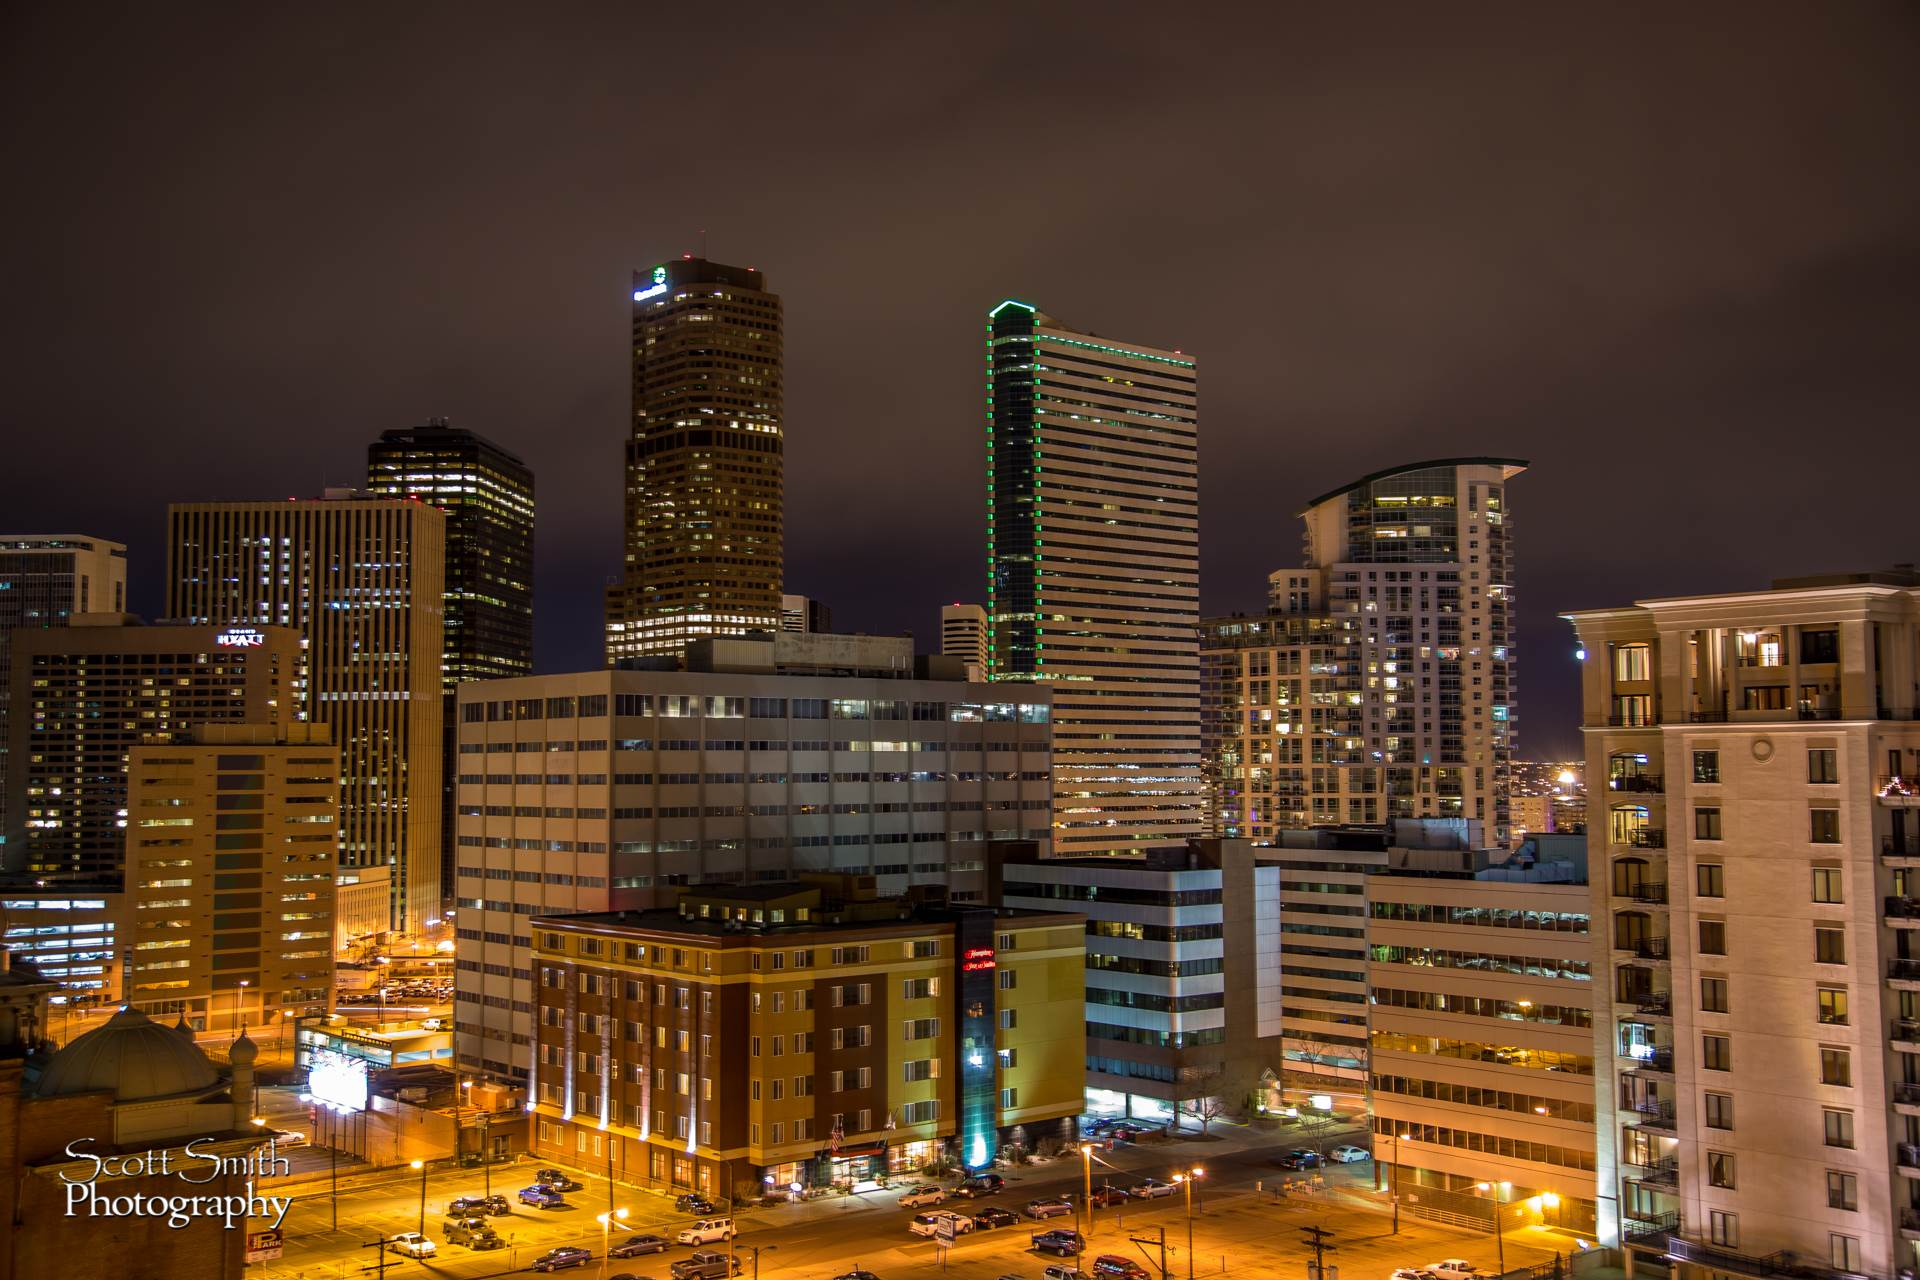 Denver at Night No 4 -  by D Scott Smith